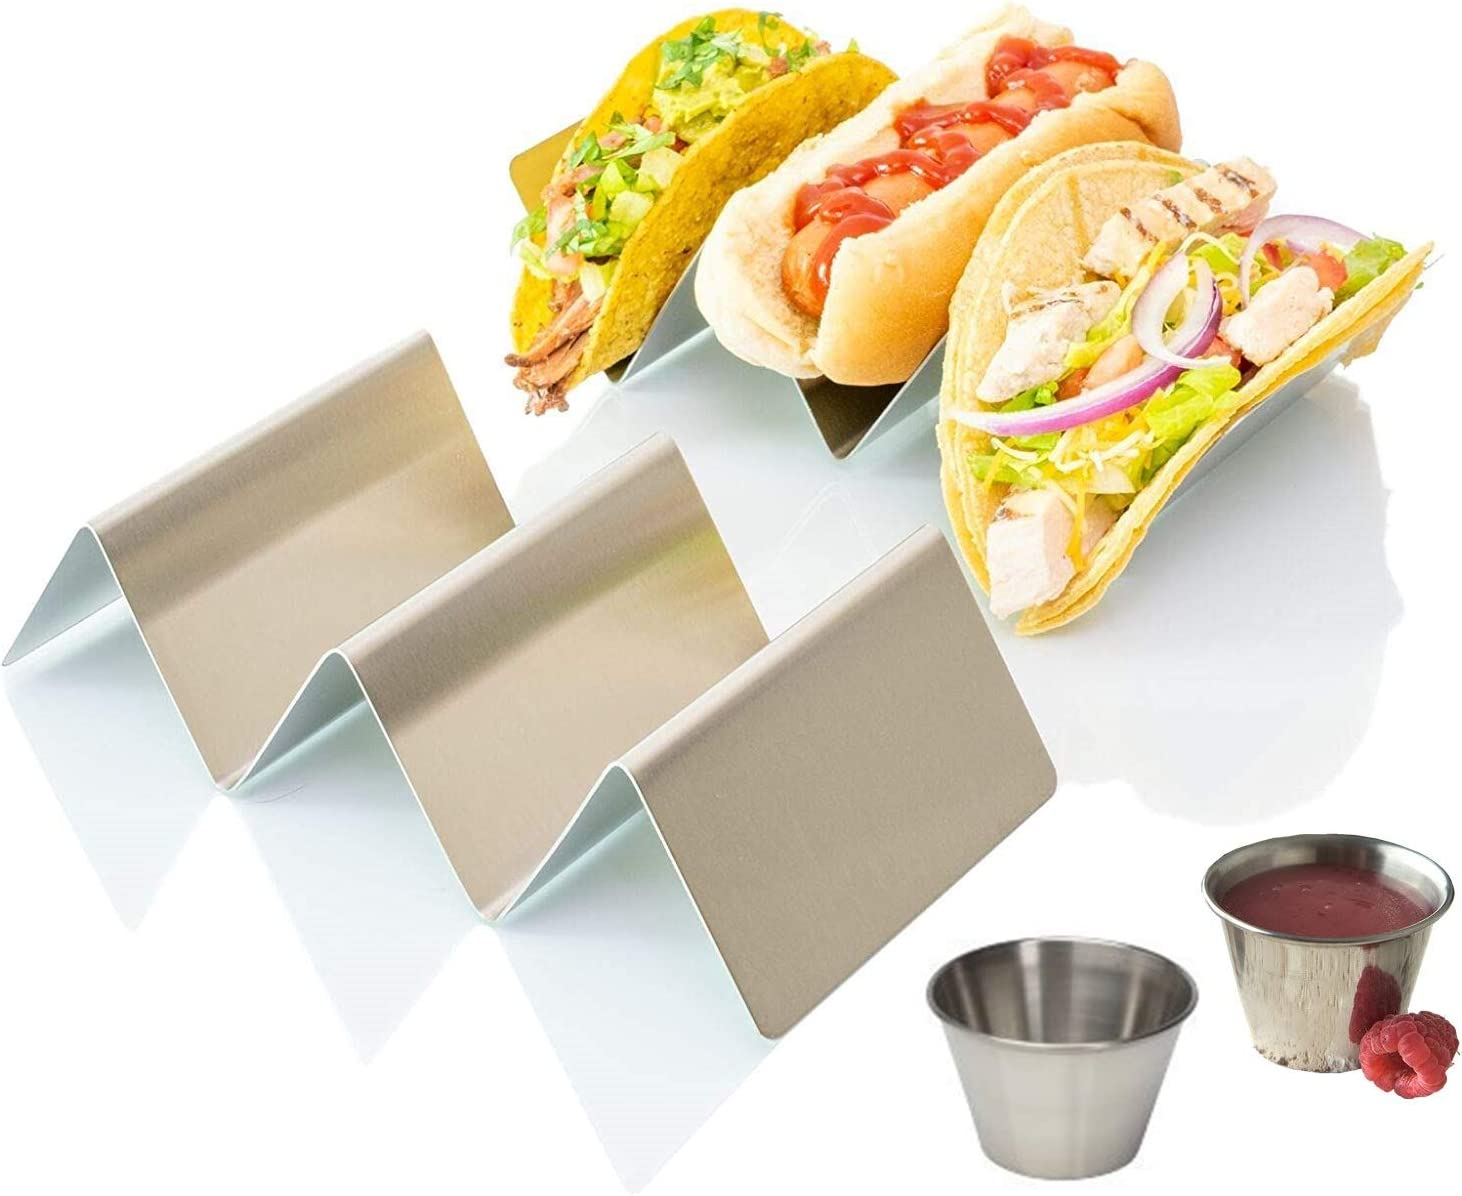 Taco Holder Stand Rack |Stainless Steel 4-Pack Mexican Food Serving Tray Stands Hold Up To 3 Tacos, Burritos, Hot Dogs